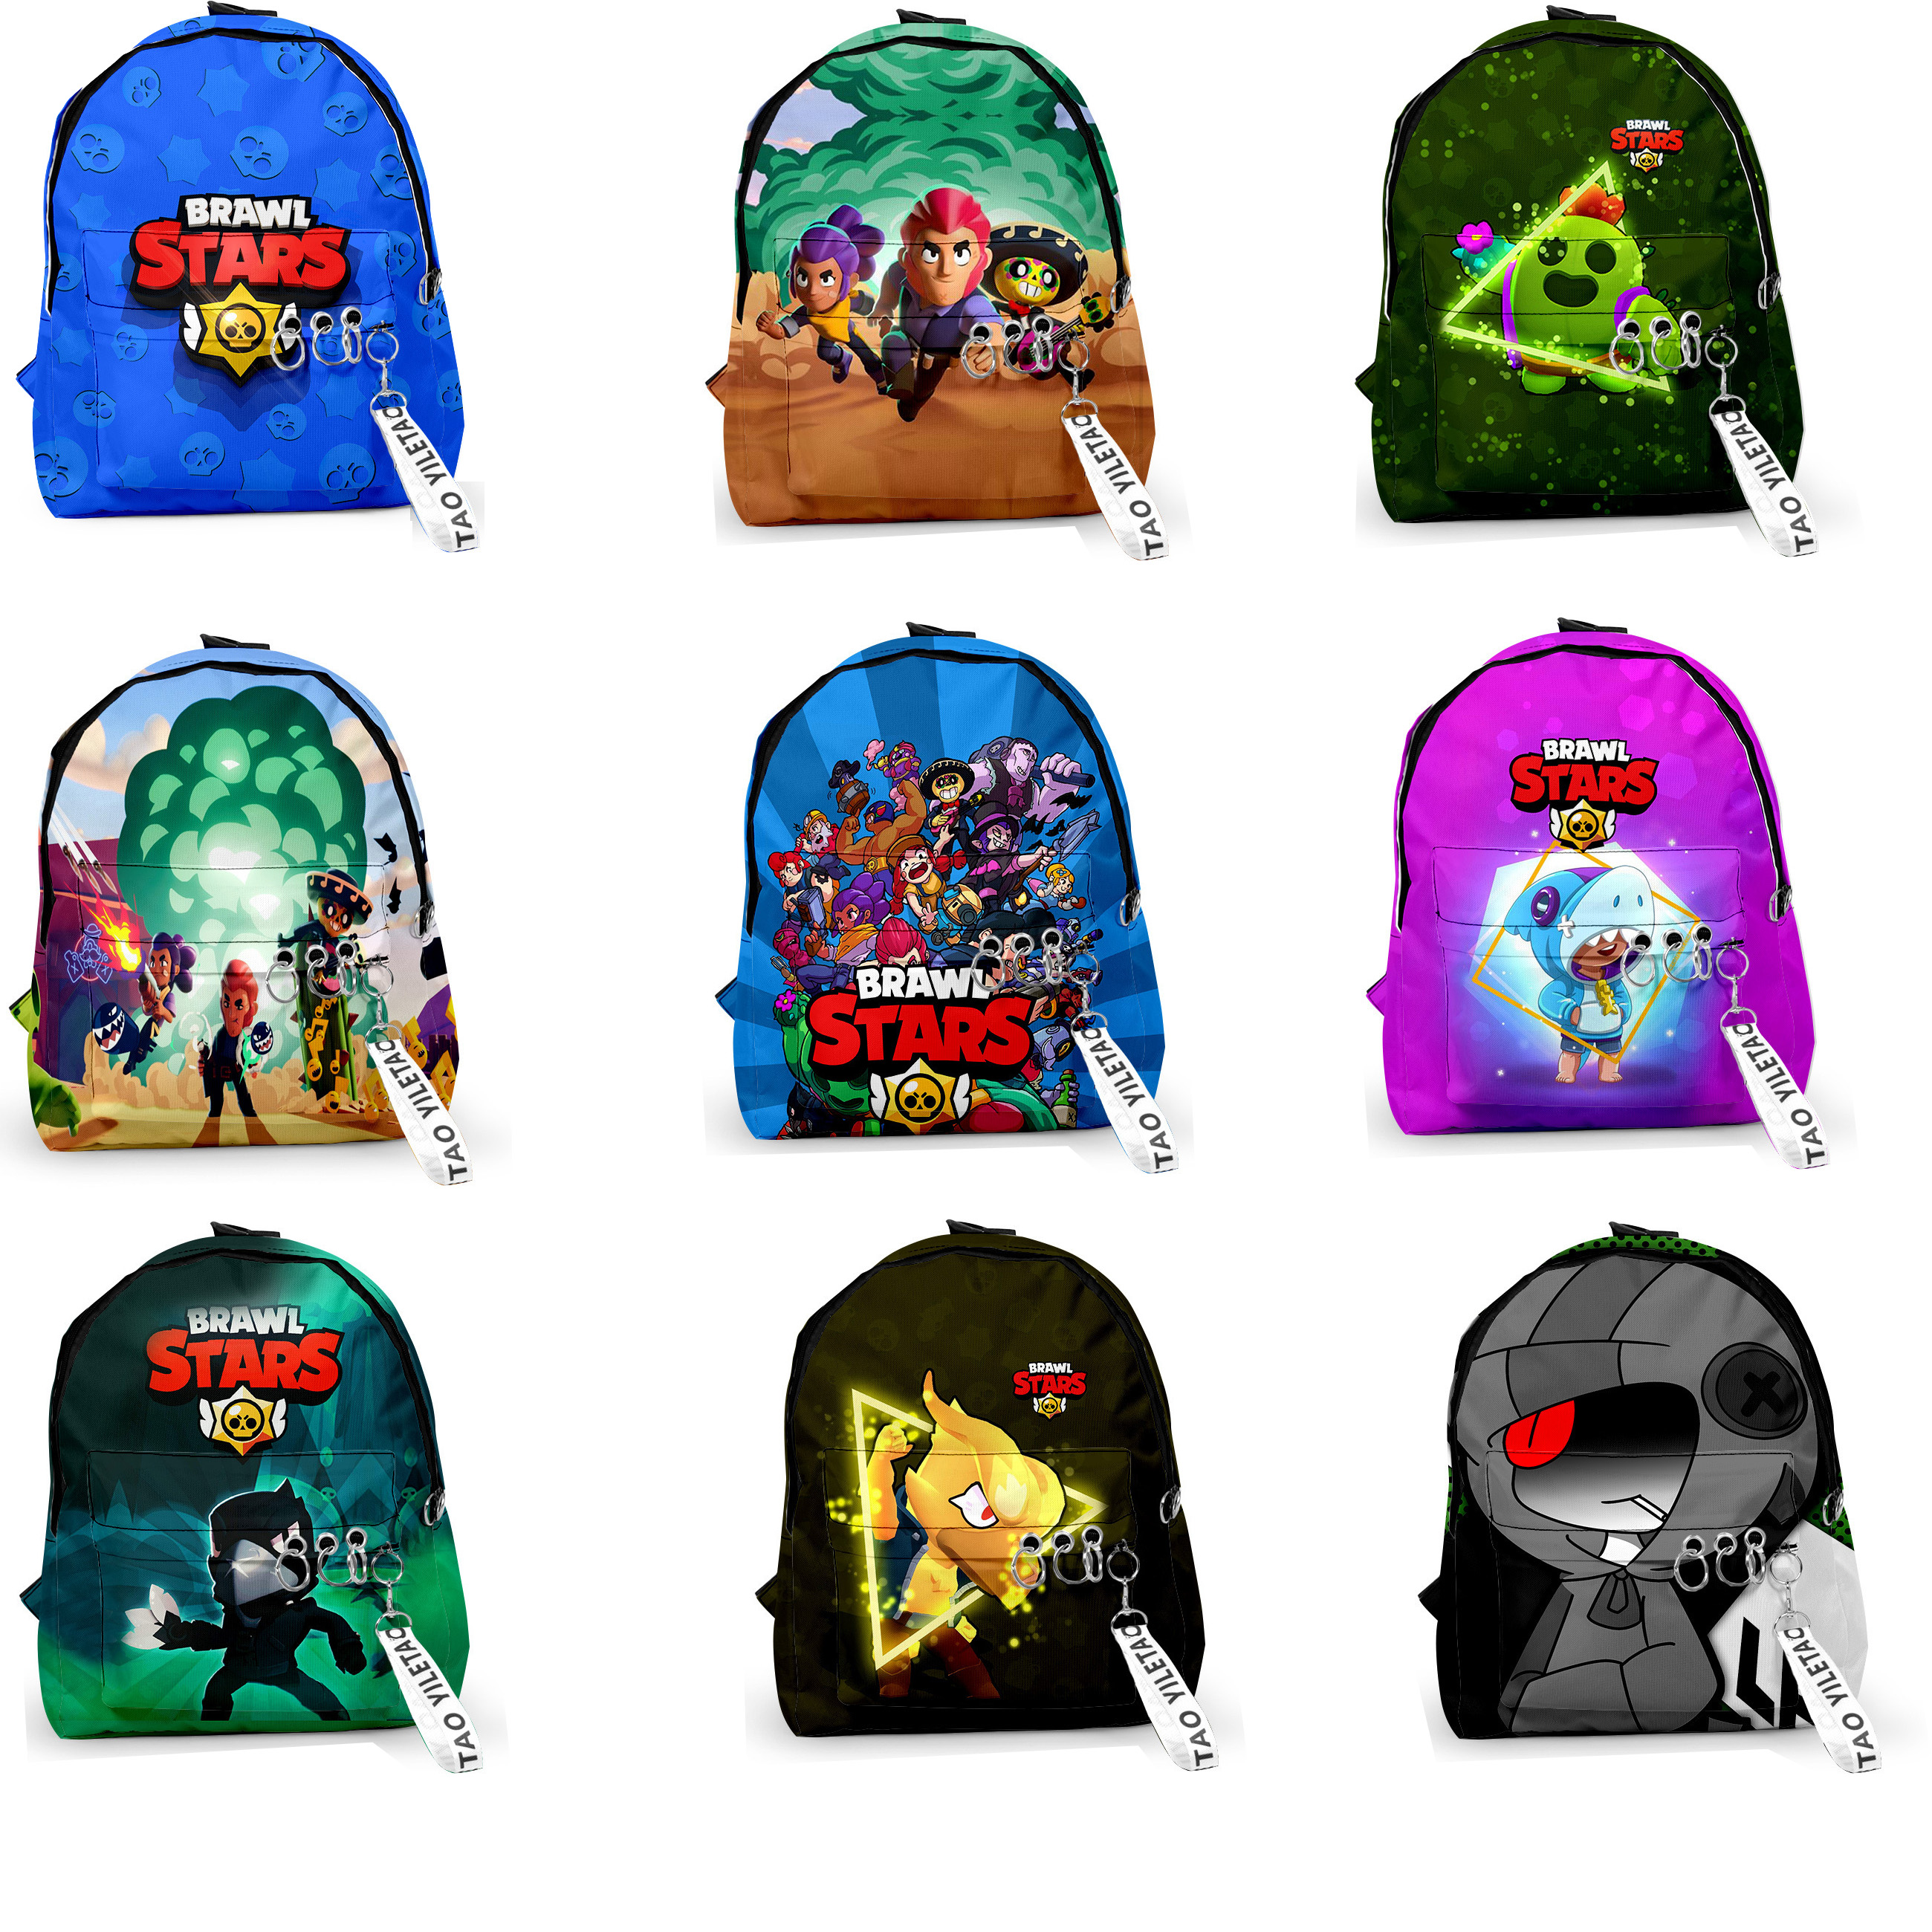 Brawl Game Cartoon Star Heroes School Bag Figure Model Spike Shelly Leon PRIMO MORTIS Backpack Toys Gifts For Boys Girls Kids